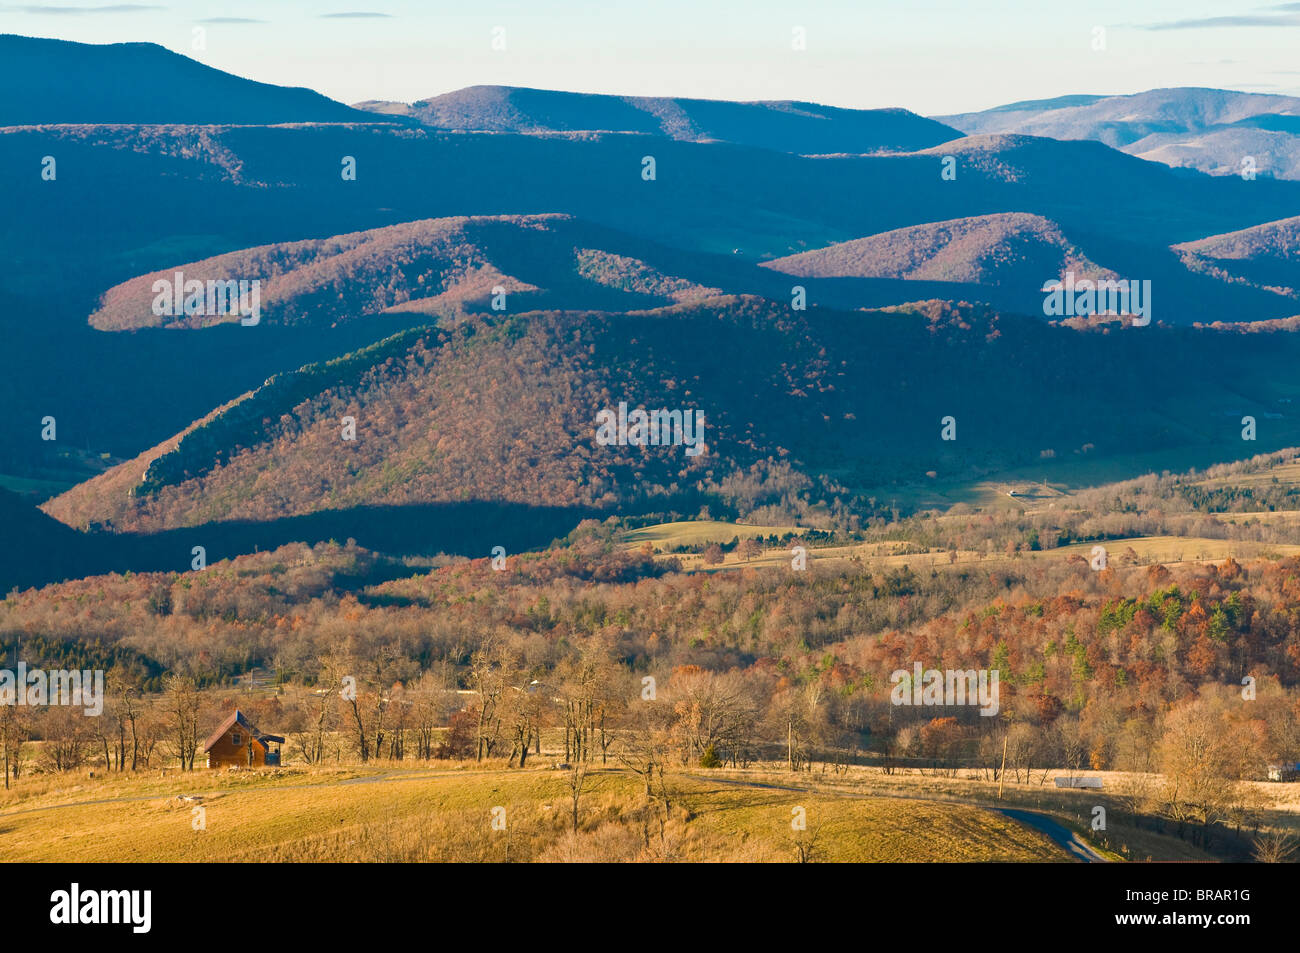 Beautiful foliage in the Indian summer, Allegheny Mountains, West Virginia, United States of America, North America - Stock Image